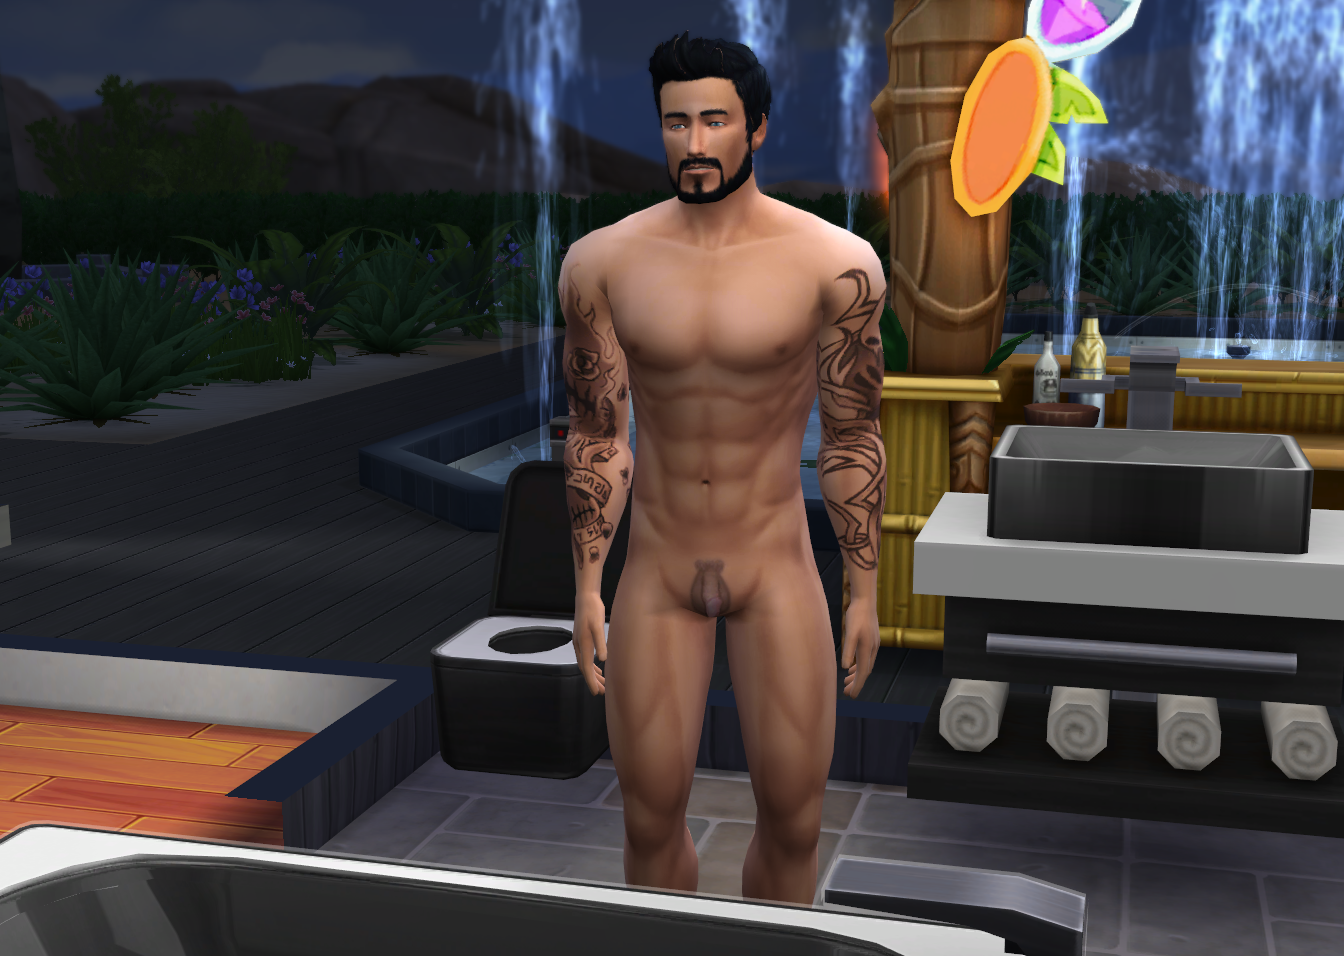 X men sims 3 XXX naked sex scene